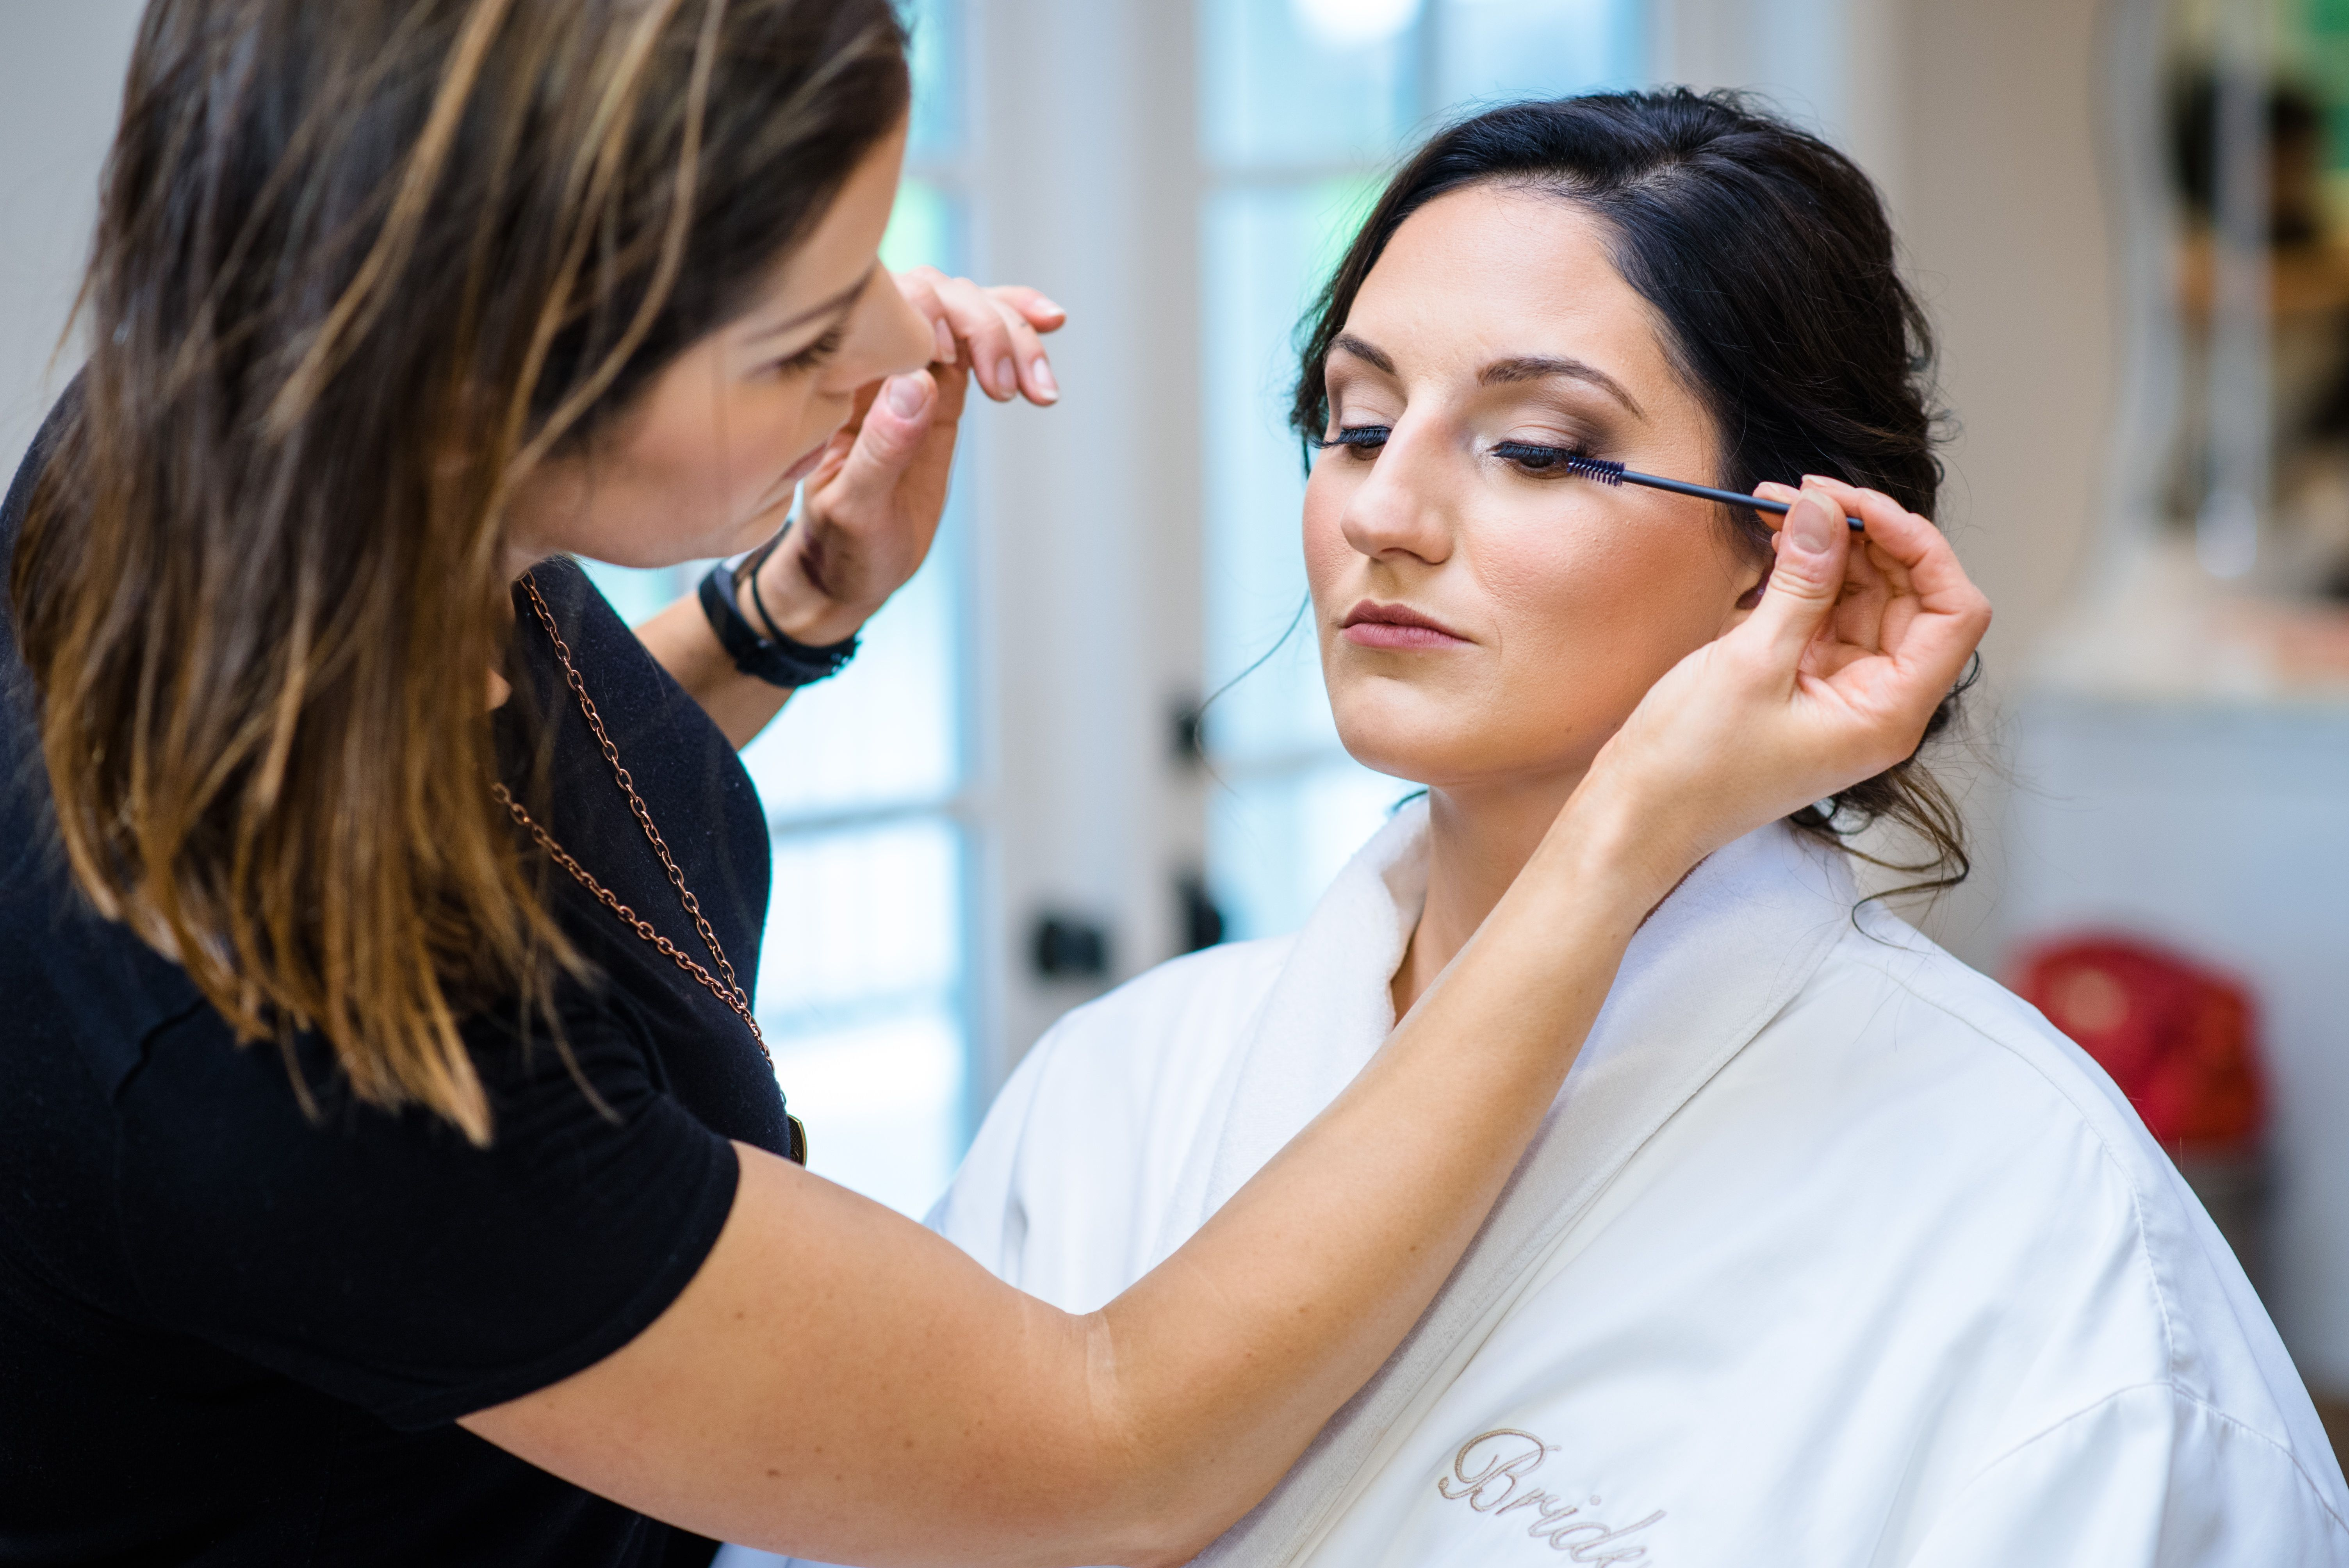 Nashville Wedding Makeup Gallery Makeup gallery, Wedding